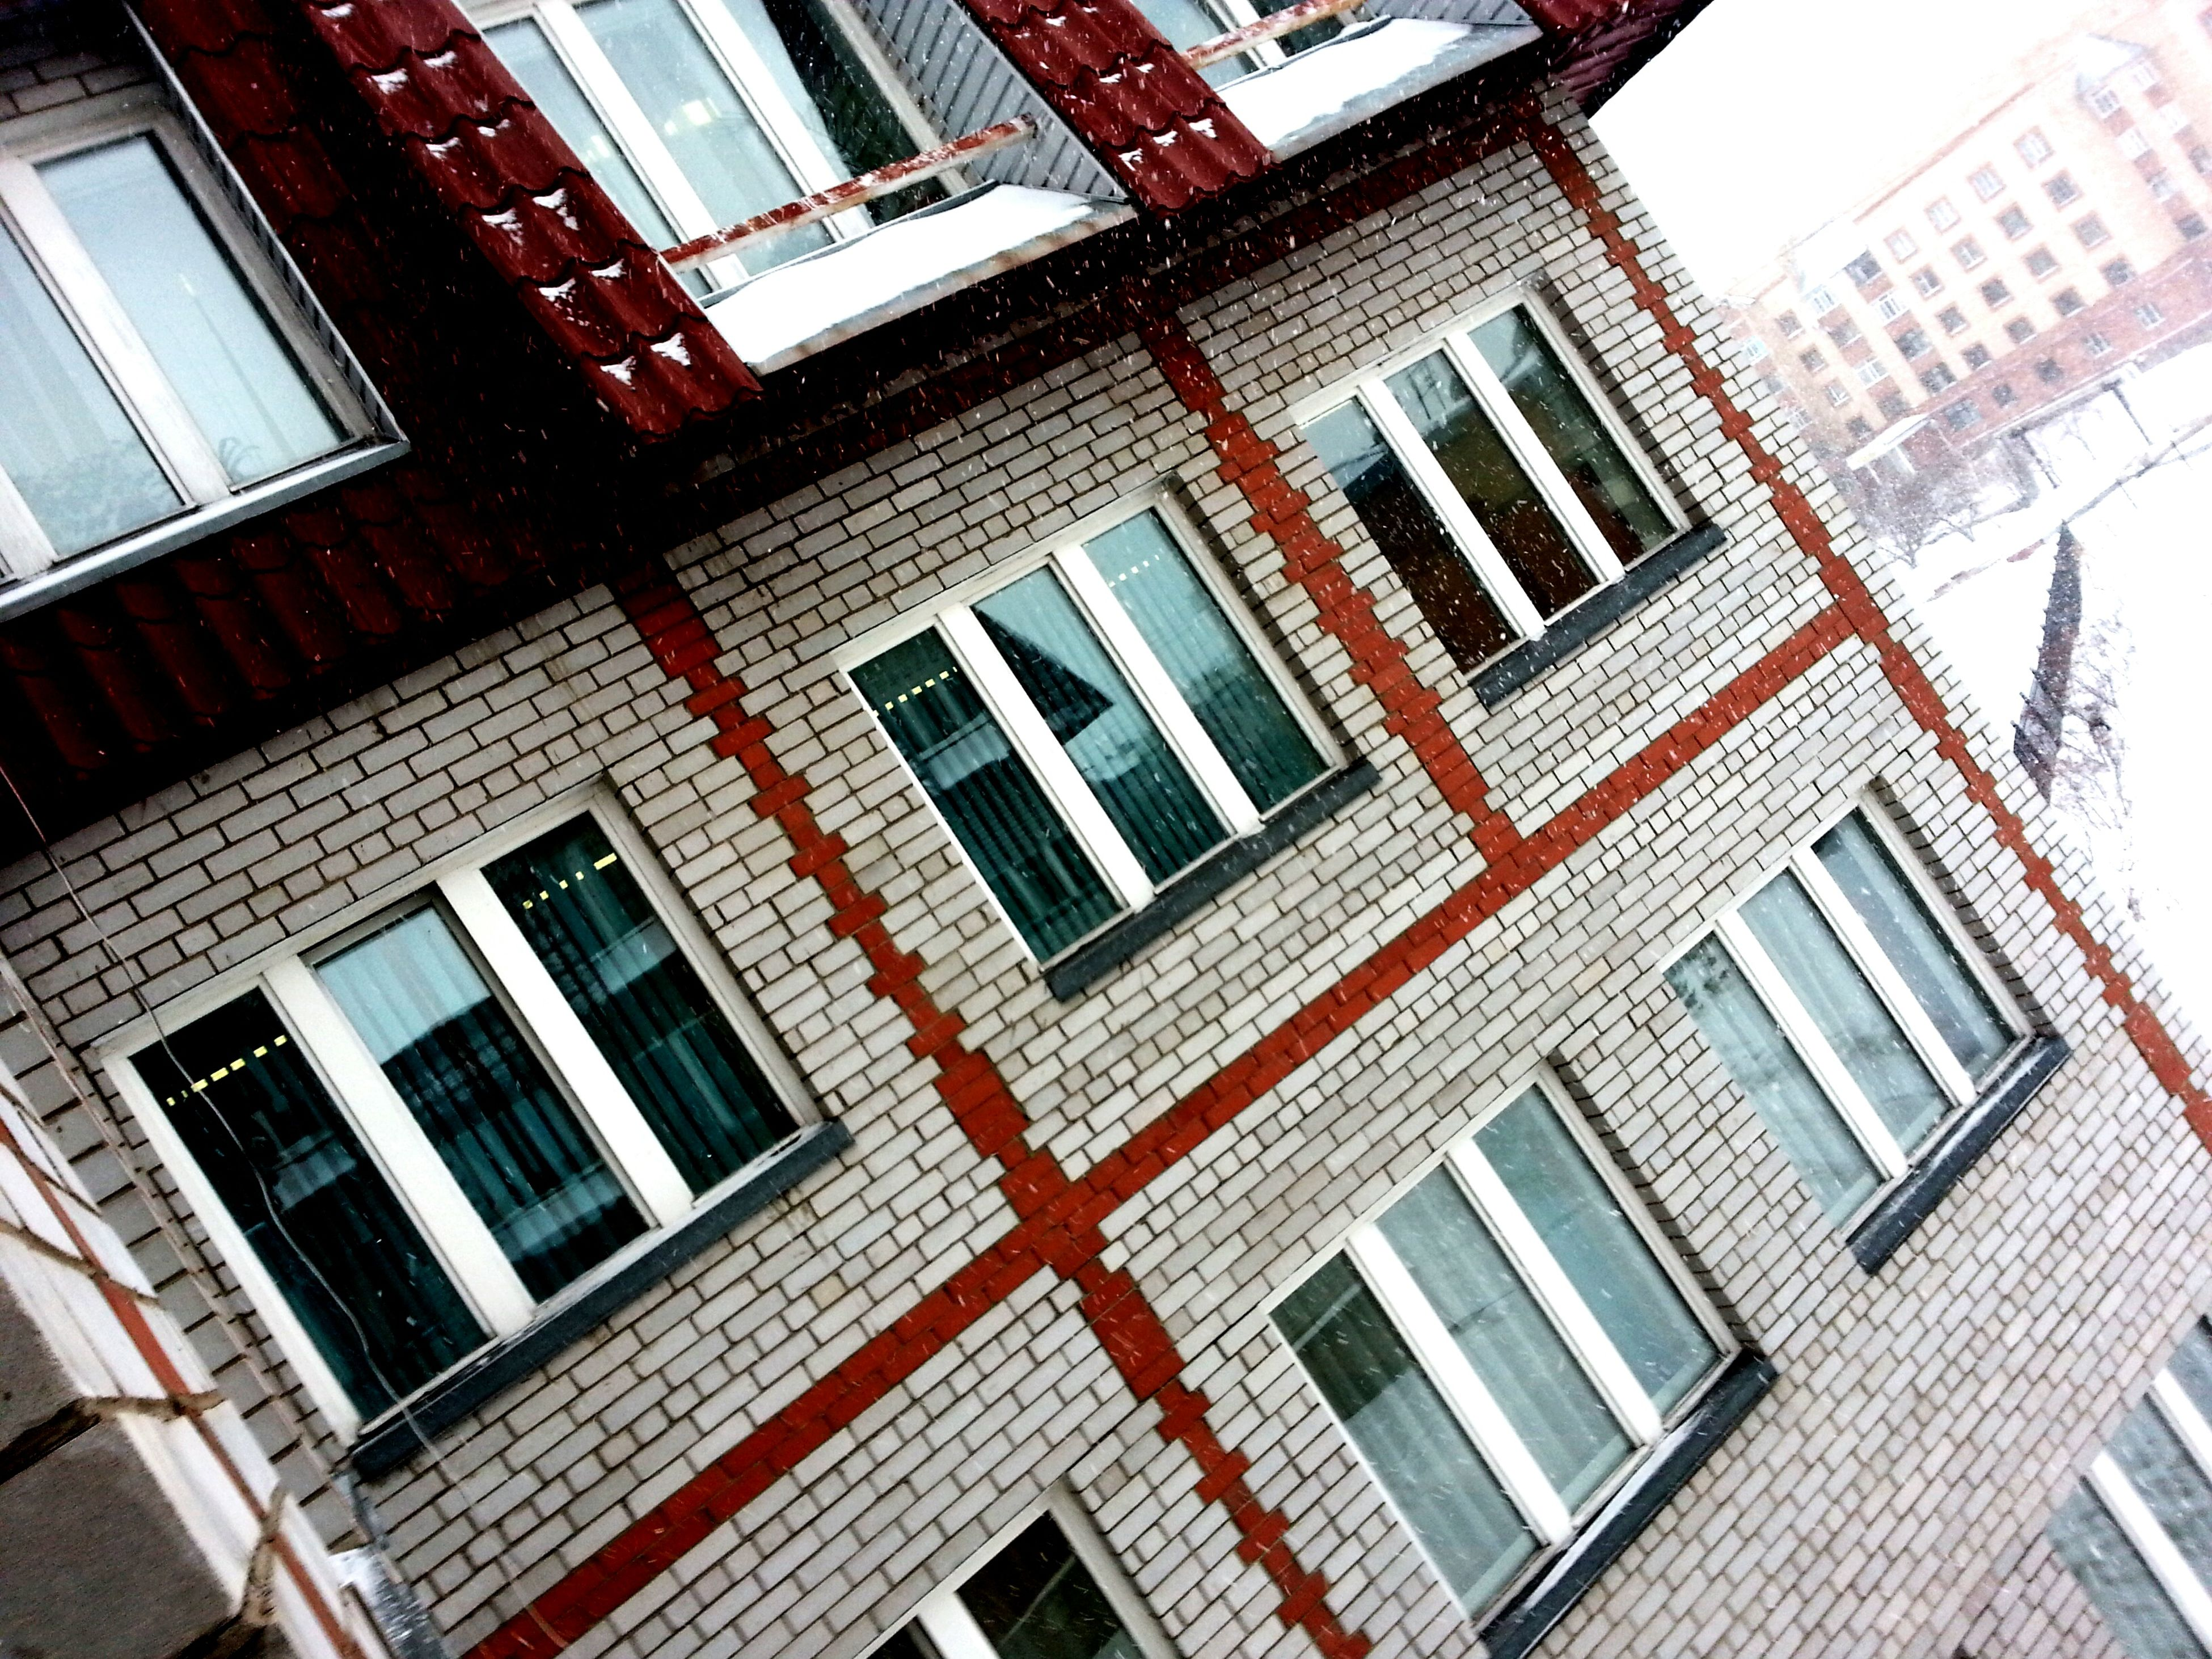 architecture, building exterior, built structure, window, low angle view, residential building, residential structure, building, day, city, balcony, outdoors, apartment, no people, full frame, house, glass - material, facade, sunlight, sky